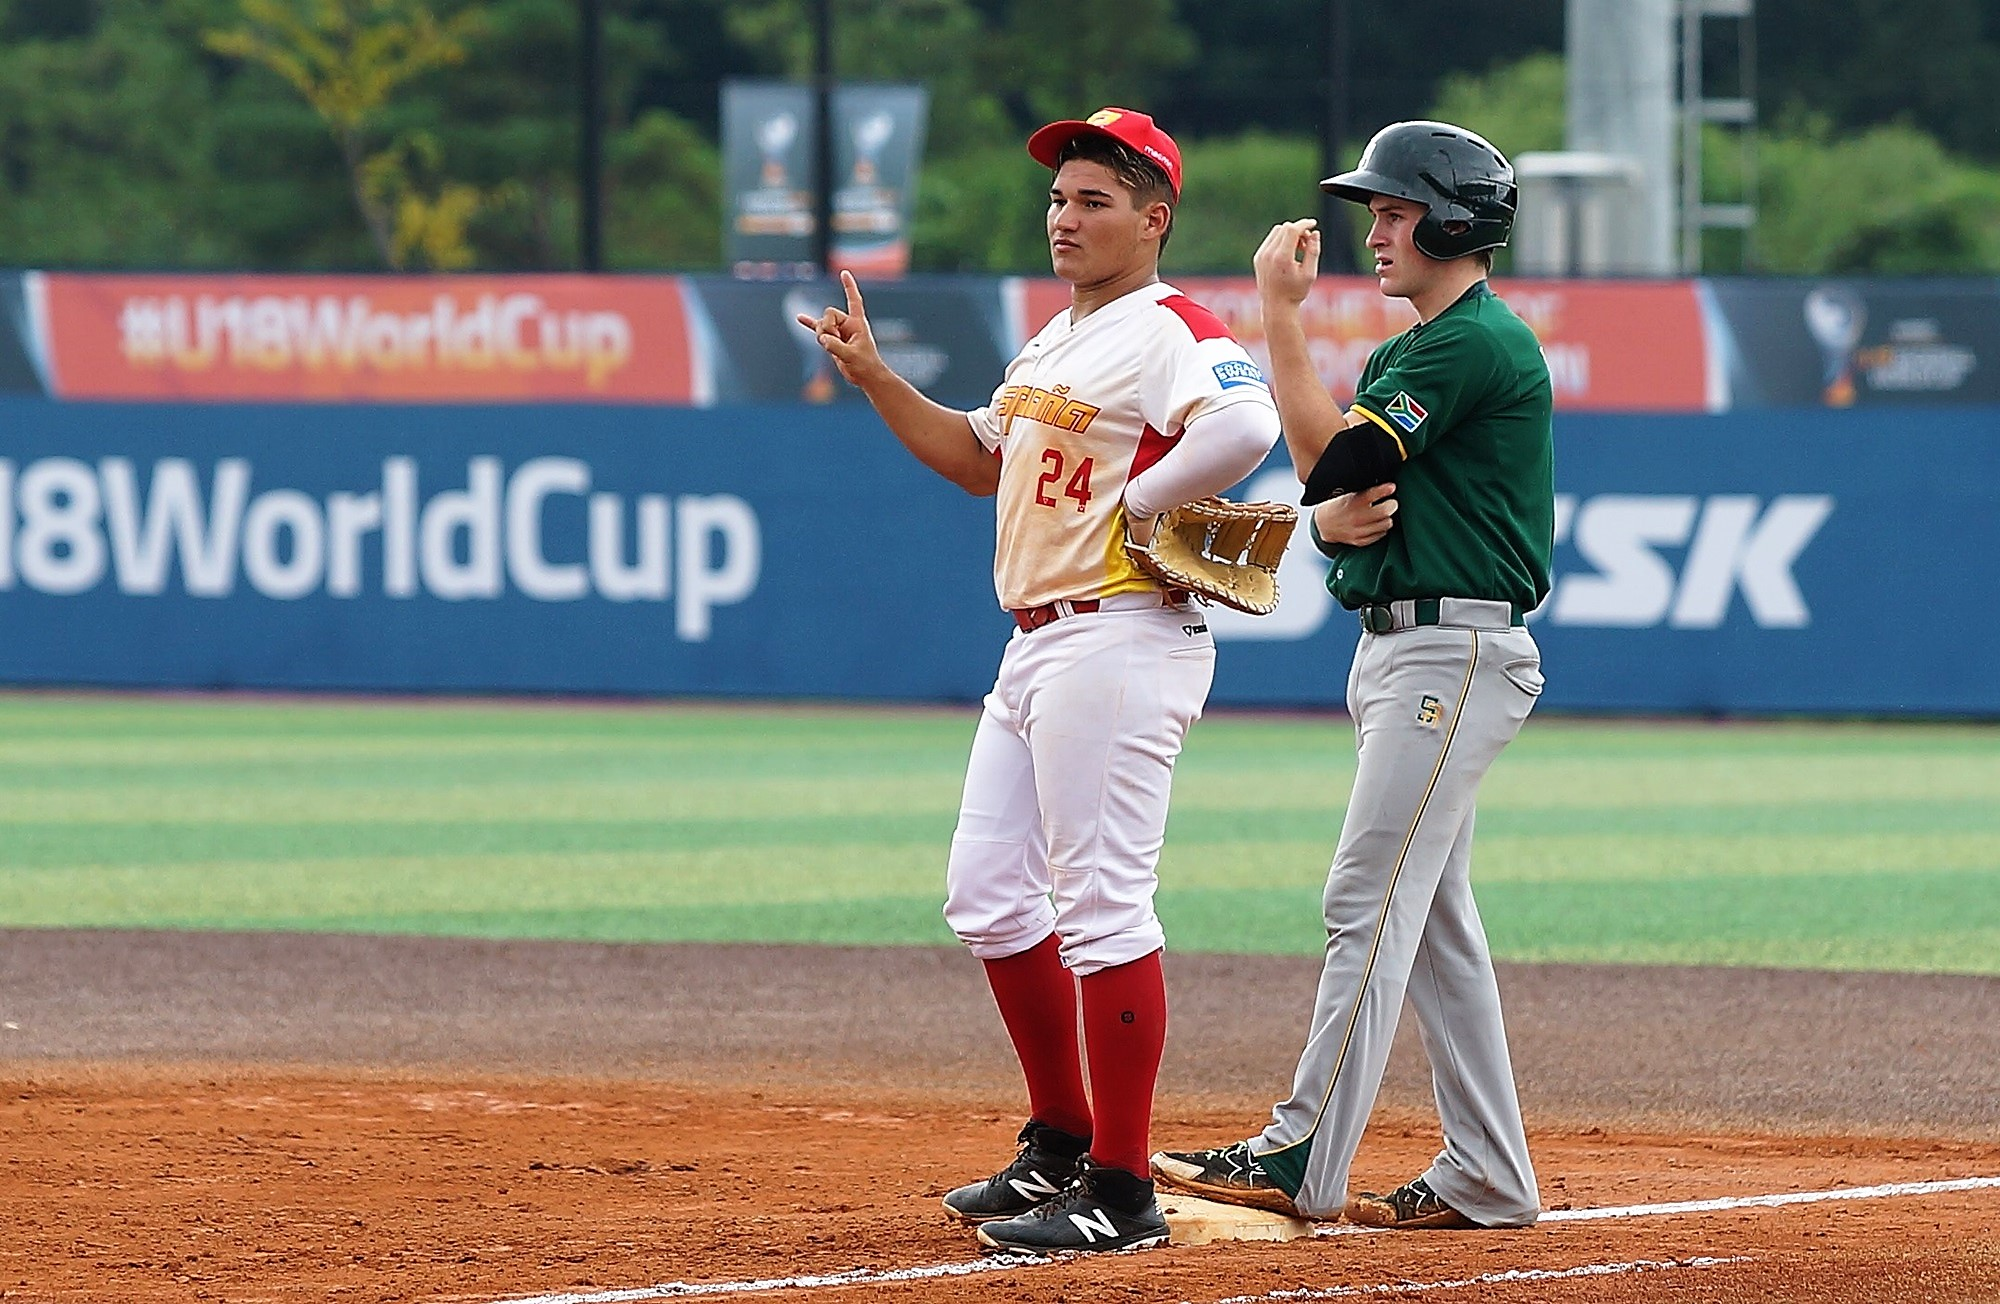 Juan Gonzalez played at first today for Spain